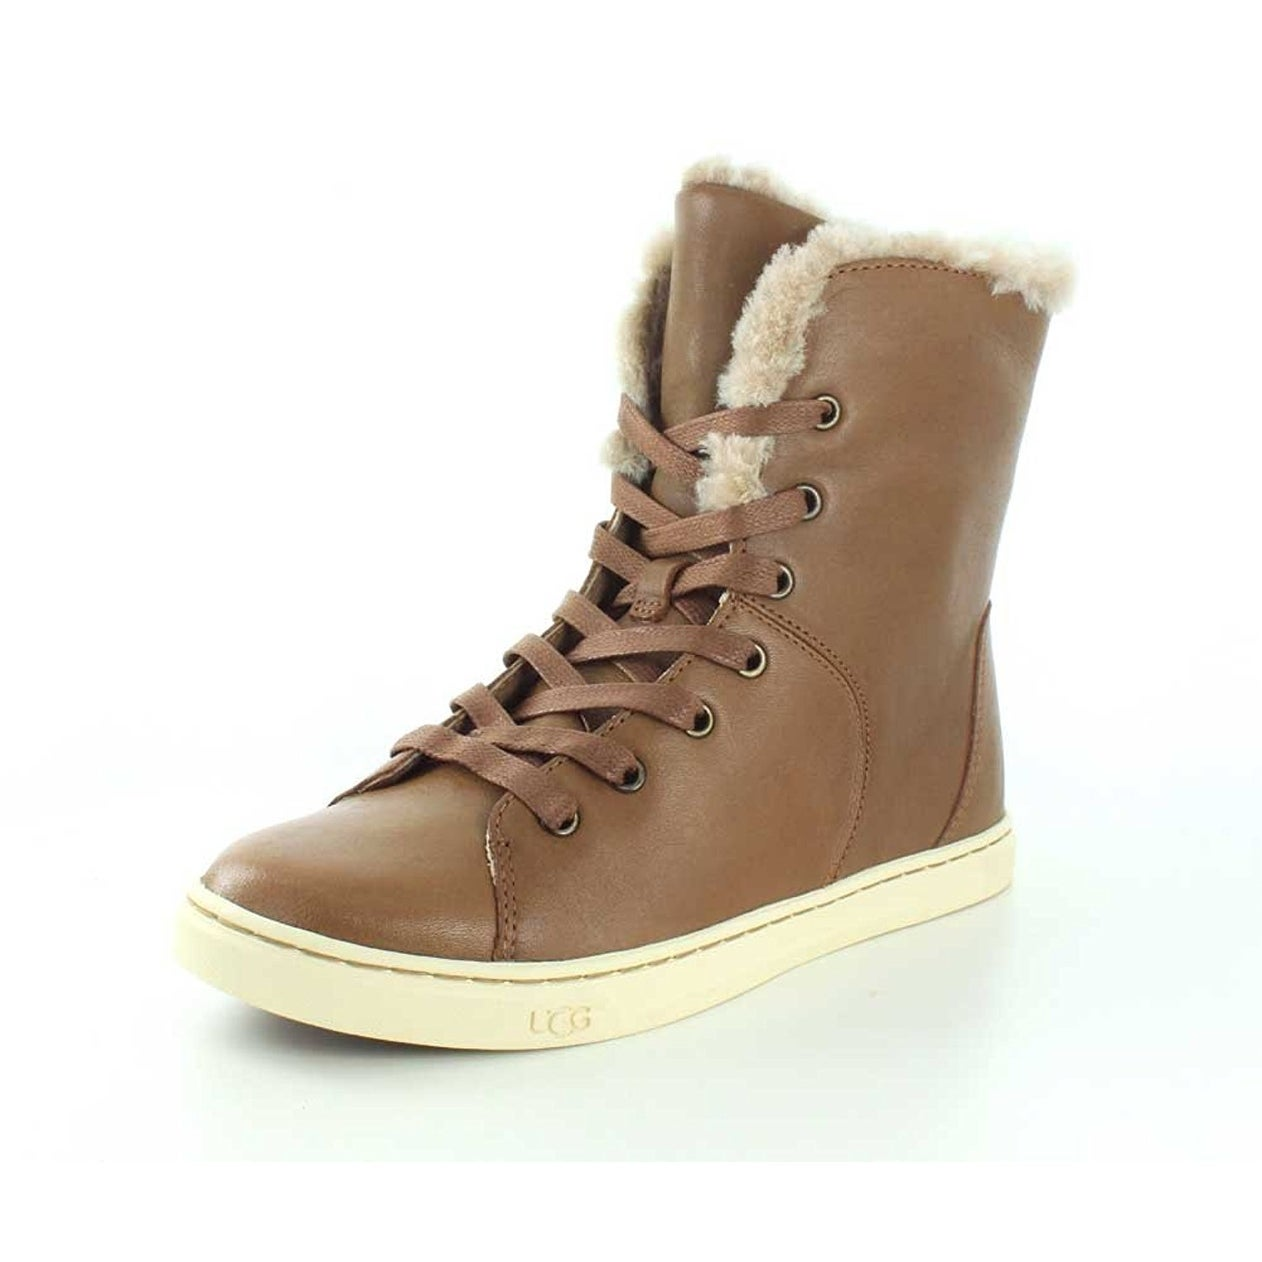 ed32716aac7 Shop UGG Womens Croft Luxe Quilt Boot - Free Shipping Today - Overstock -  16978988